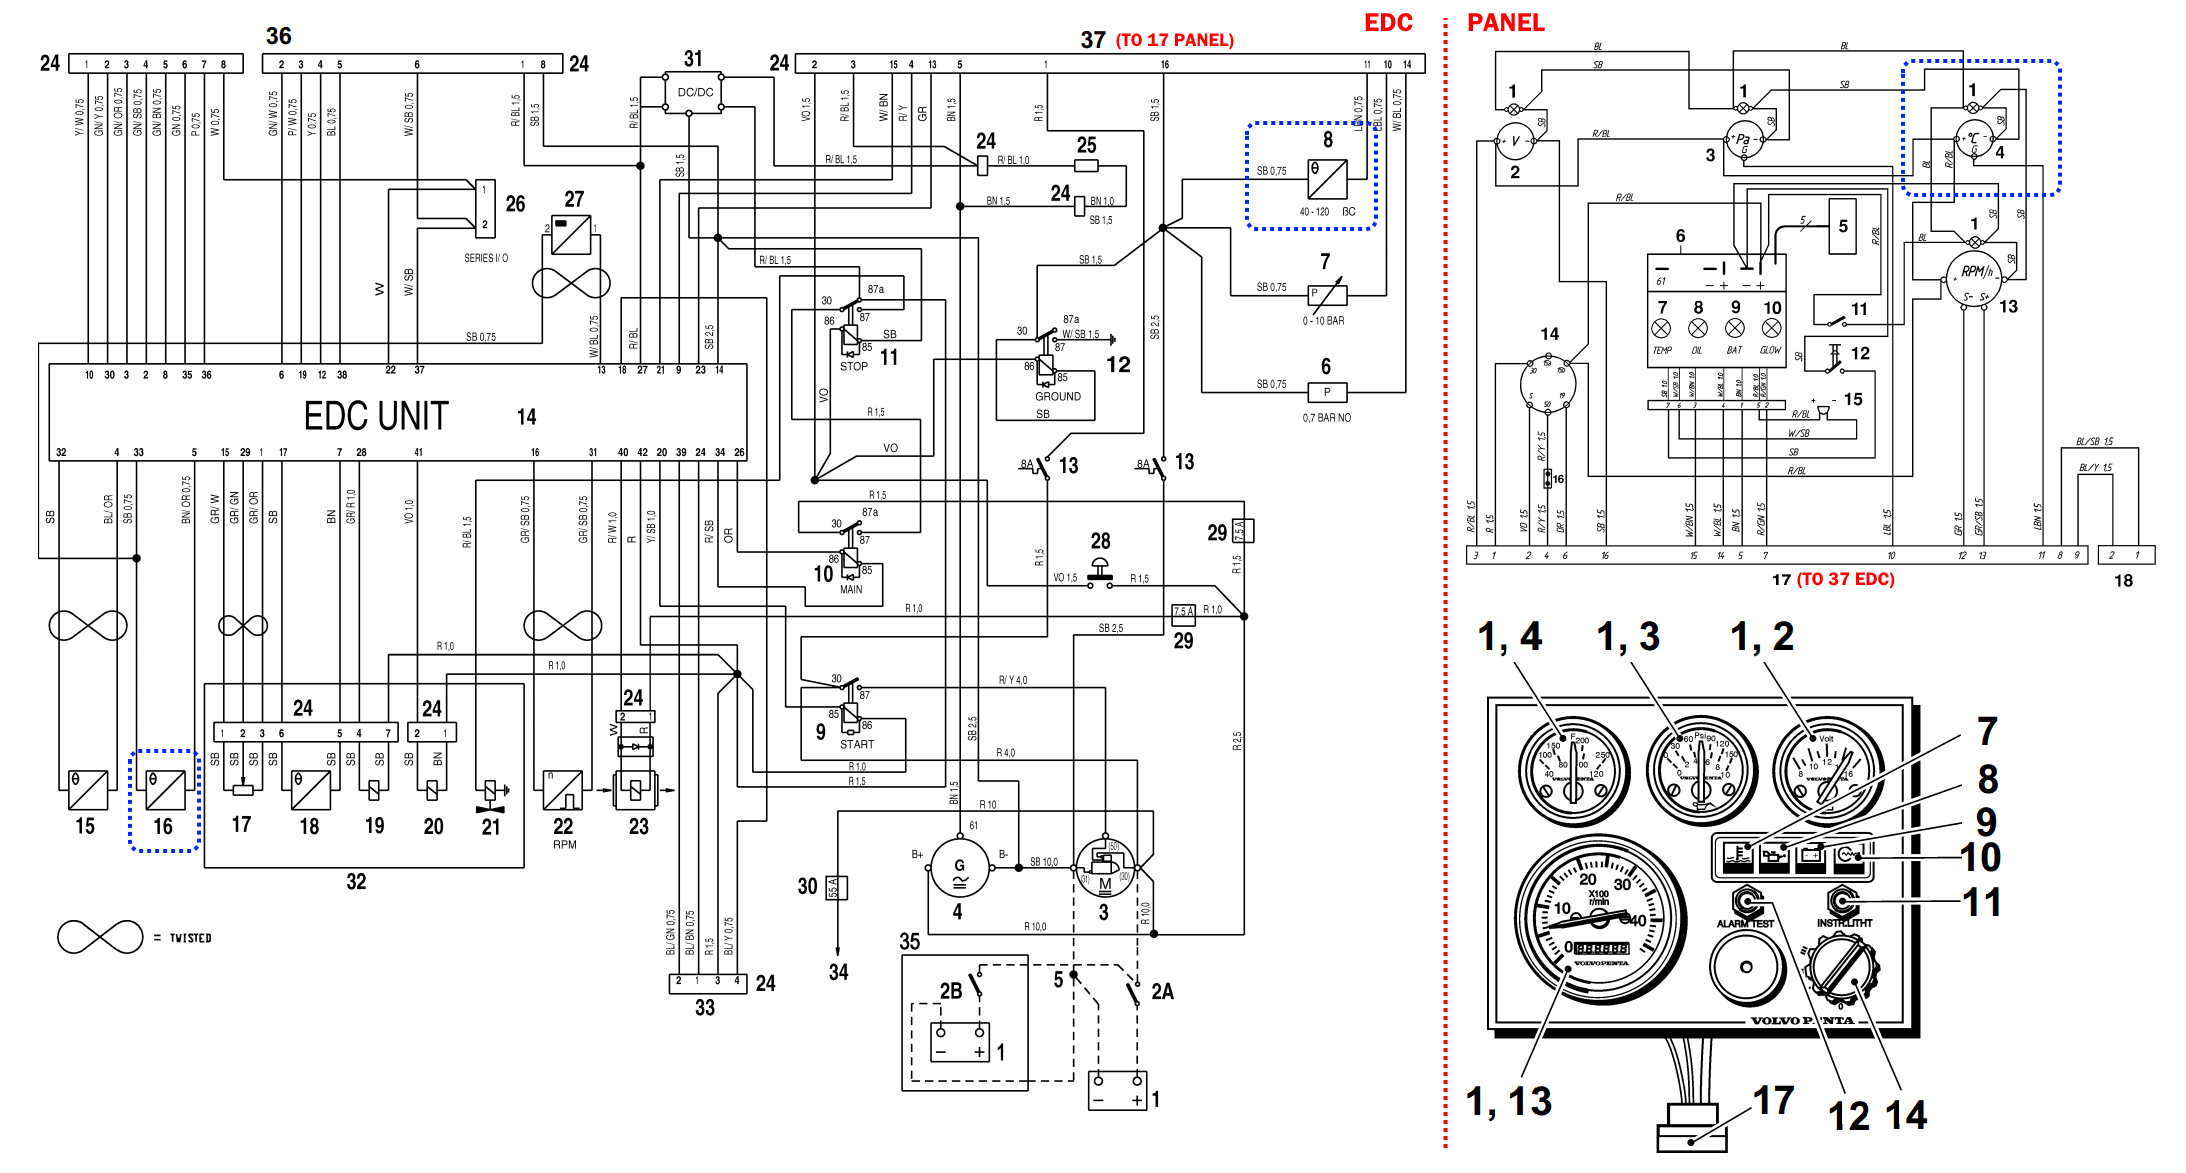 WRG-3124] Volvo V70 Stereo Wiring on 1998 land rover discovery wiring diagram, 1995 volvo 850 wiring diagram, 2005 volvo xc90 wiring diagram, 2006 volvo xc90 wiring diagram, 1998 pontiac grand am wiring diagram, 1995 volvo 960 wiring diagram, 1998 bmw z3 wiring diagram, 1998 oldsmobile intrigue wiring diagram, 1990 volvo 740 wiring diagram, 2004 volvo xc90 wiring diagram, 1998 cadillac seville wiring diagram, 1991 volvo 740 wiring diagram, 1999 volvo s80 fuse box diagram, 2004 volvo s60 fuse diagram, volvo s70 wiring diagram, 1998 nissan sentra wiring diagram, 1998 nissan pickup wiring diagram, 1998 chevrolet suburban wiring diagram, 1998 dodge intrepid wiring diagram, 2003 volvo xc90 wiring diagram,